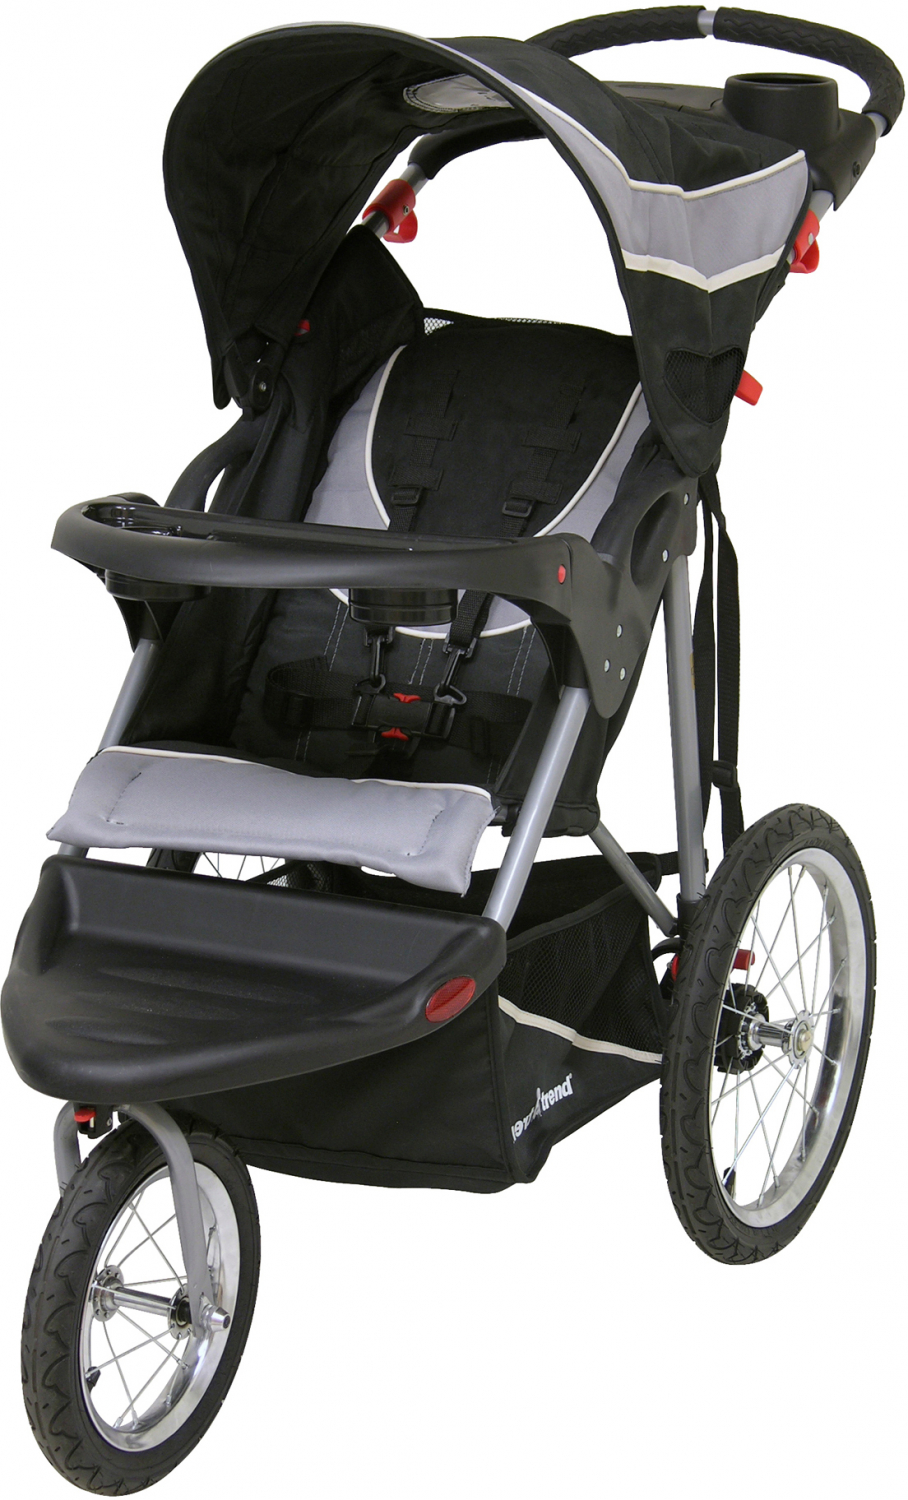 Details About Baby Jogging Stroller Expedition All Terrain Jogger Bicycle Tires Child Tray New